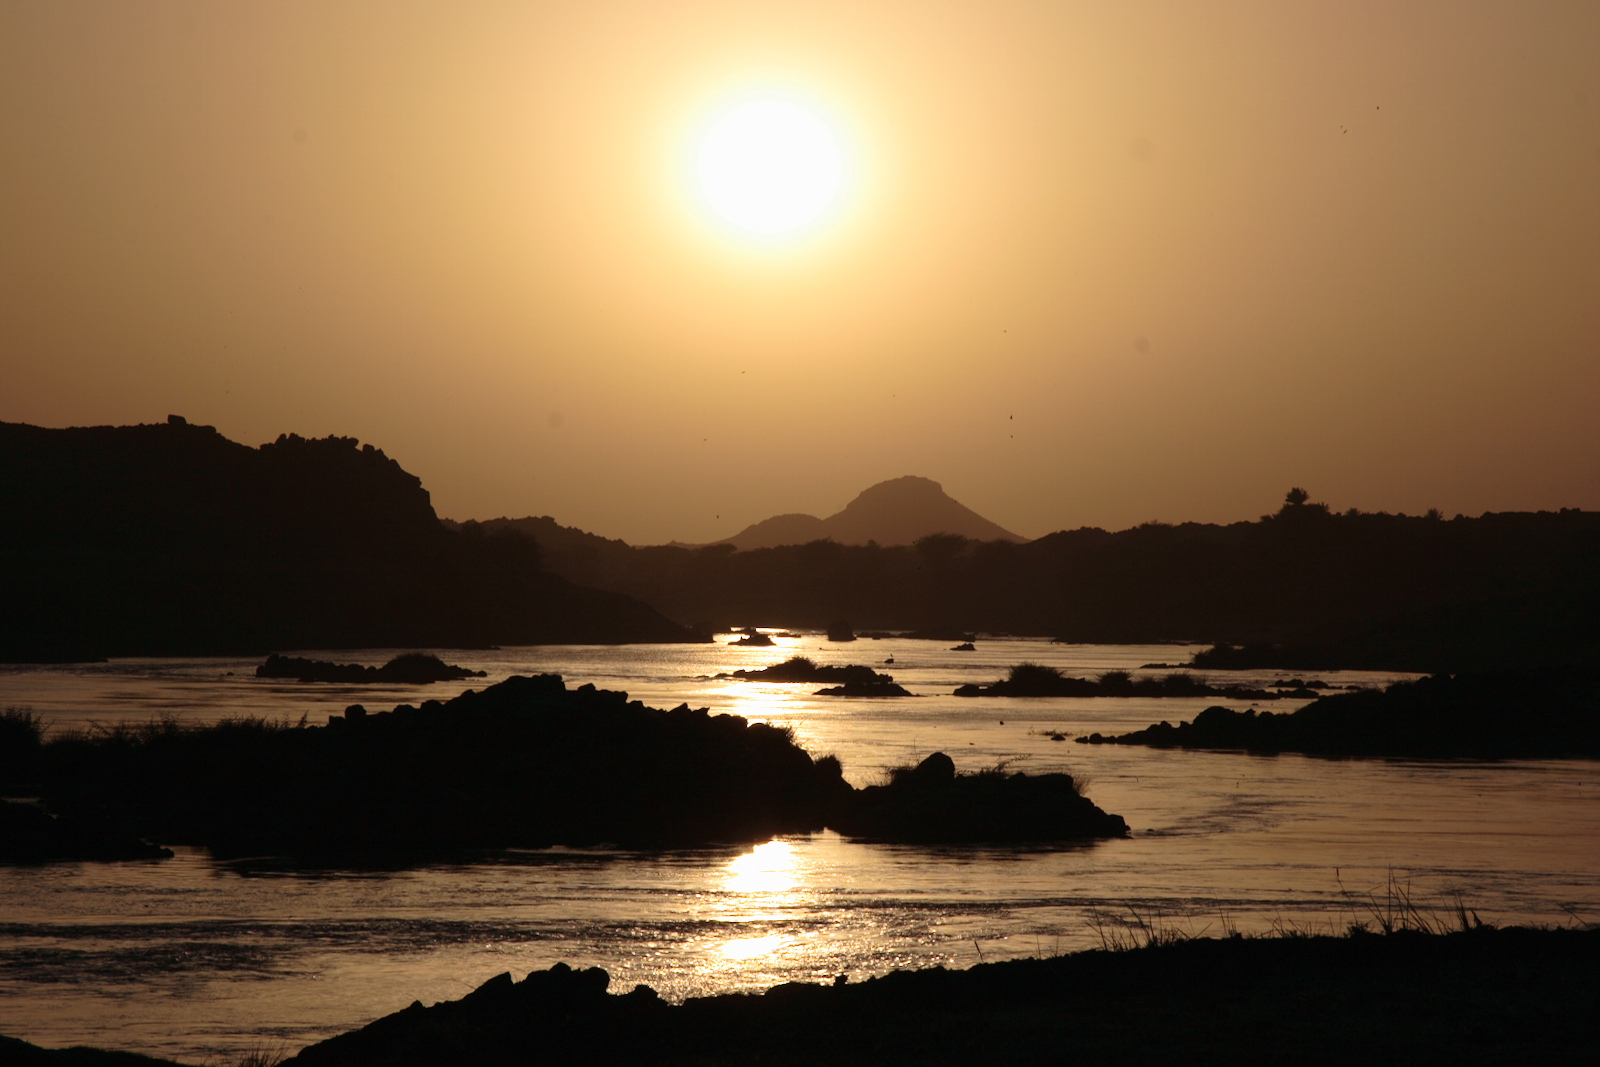 Nile sunset dar almanasir